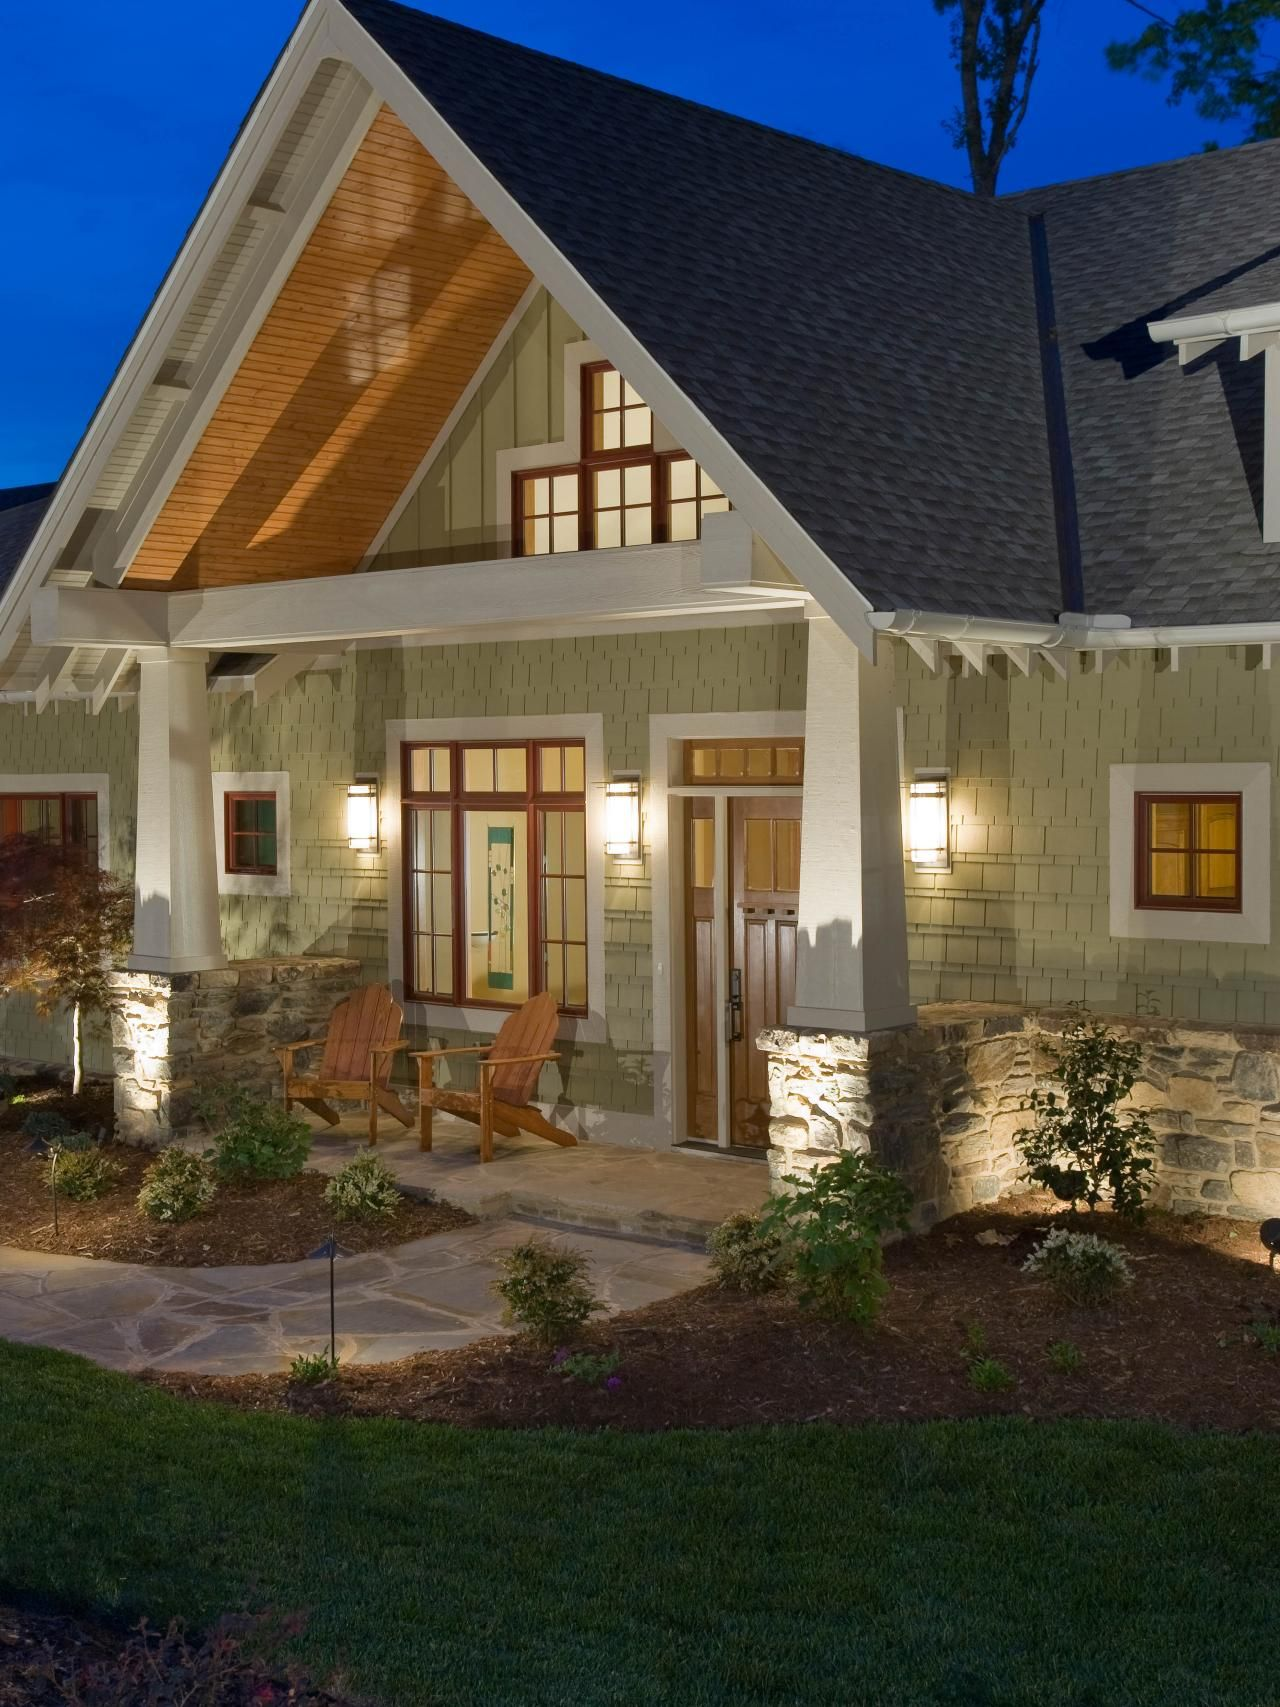 This Craftsman-style home has a large, inviting front porch ...